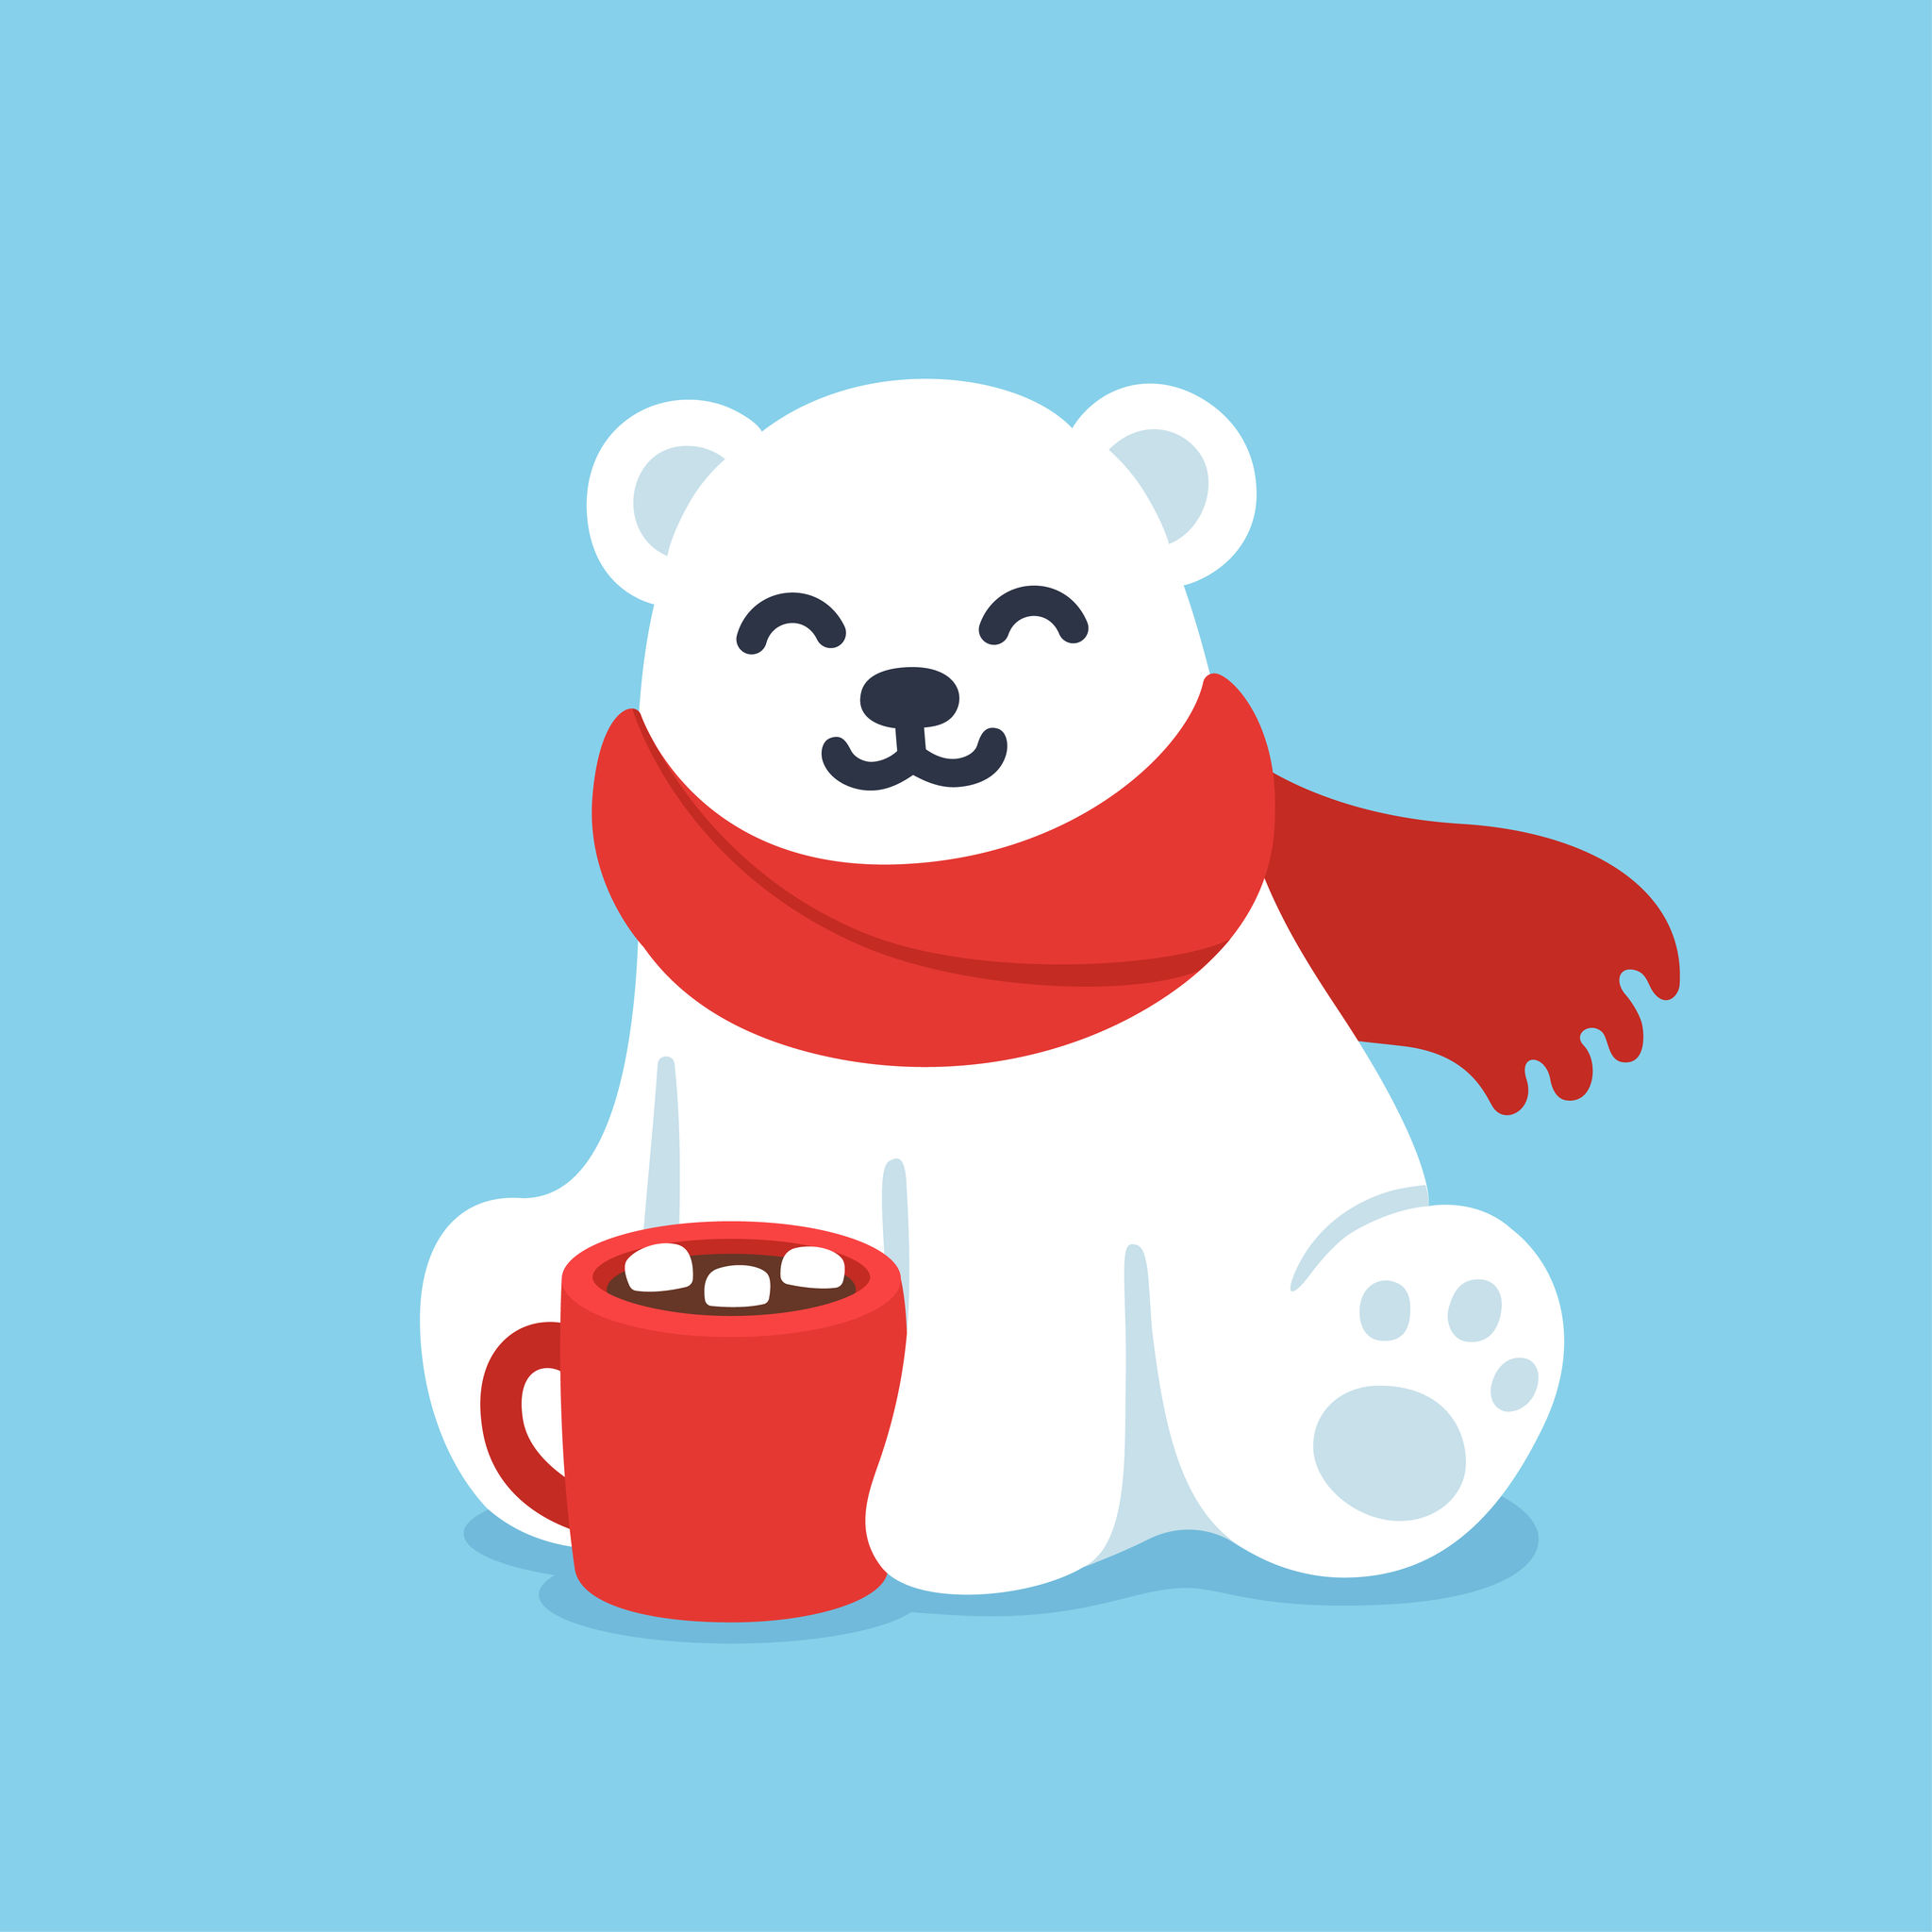 67688504 - cute cartoon polar bear in red scarf with hot chocolate cup. christmas and winter holidays greeting card vector illustration.